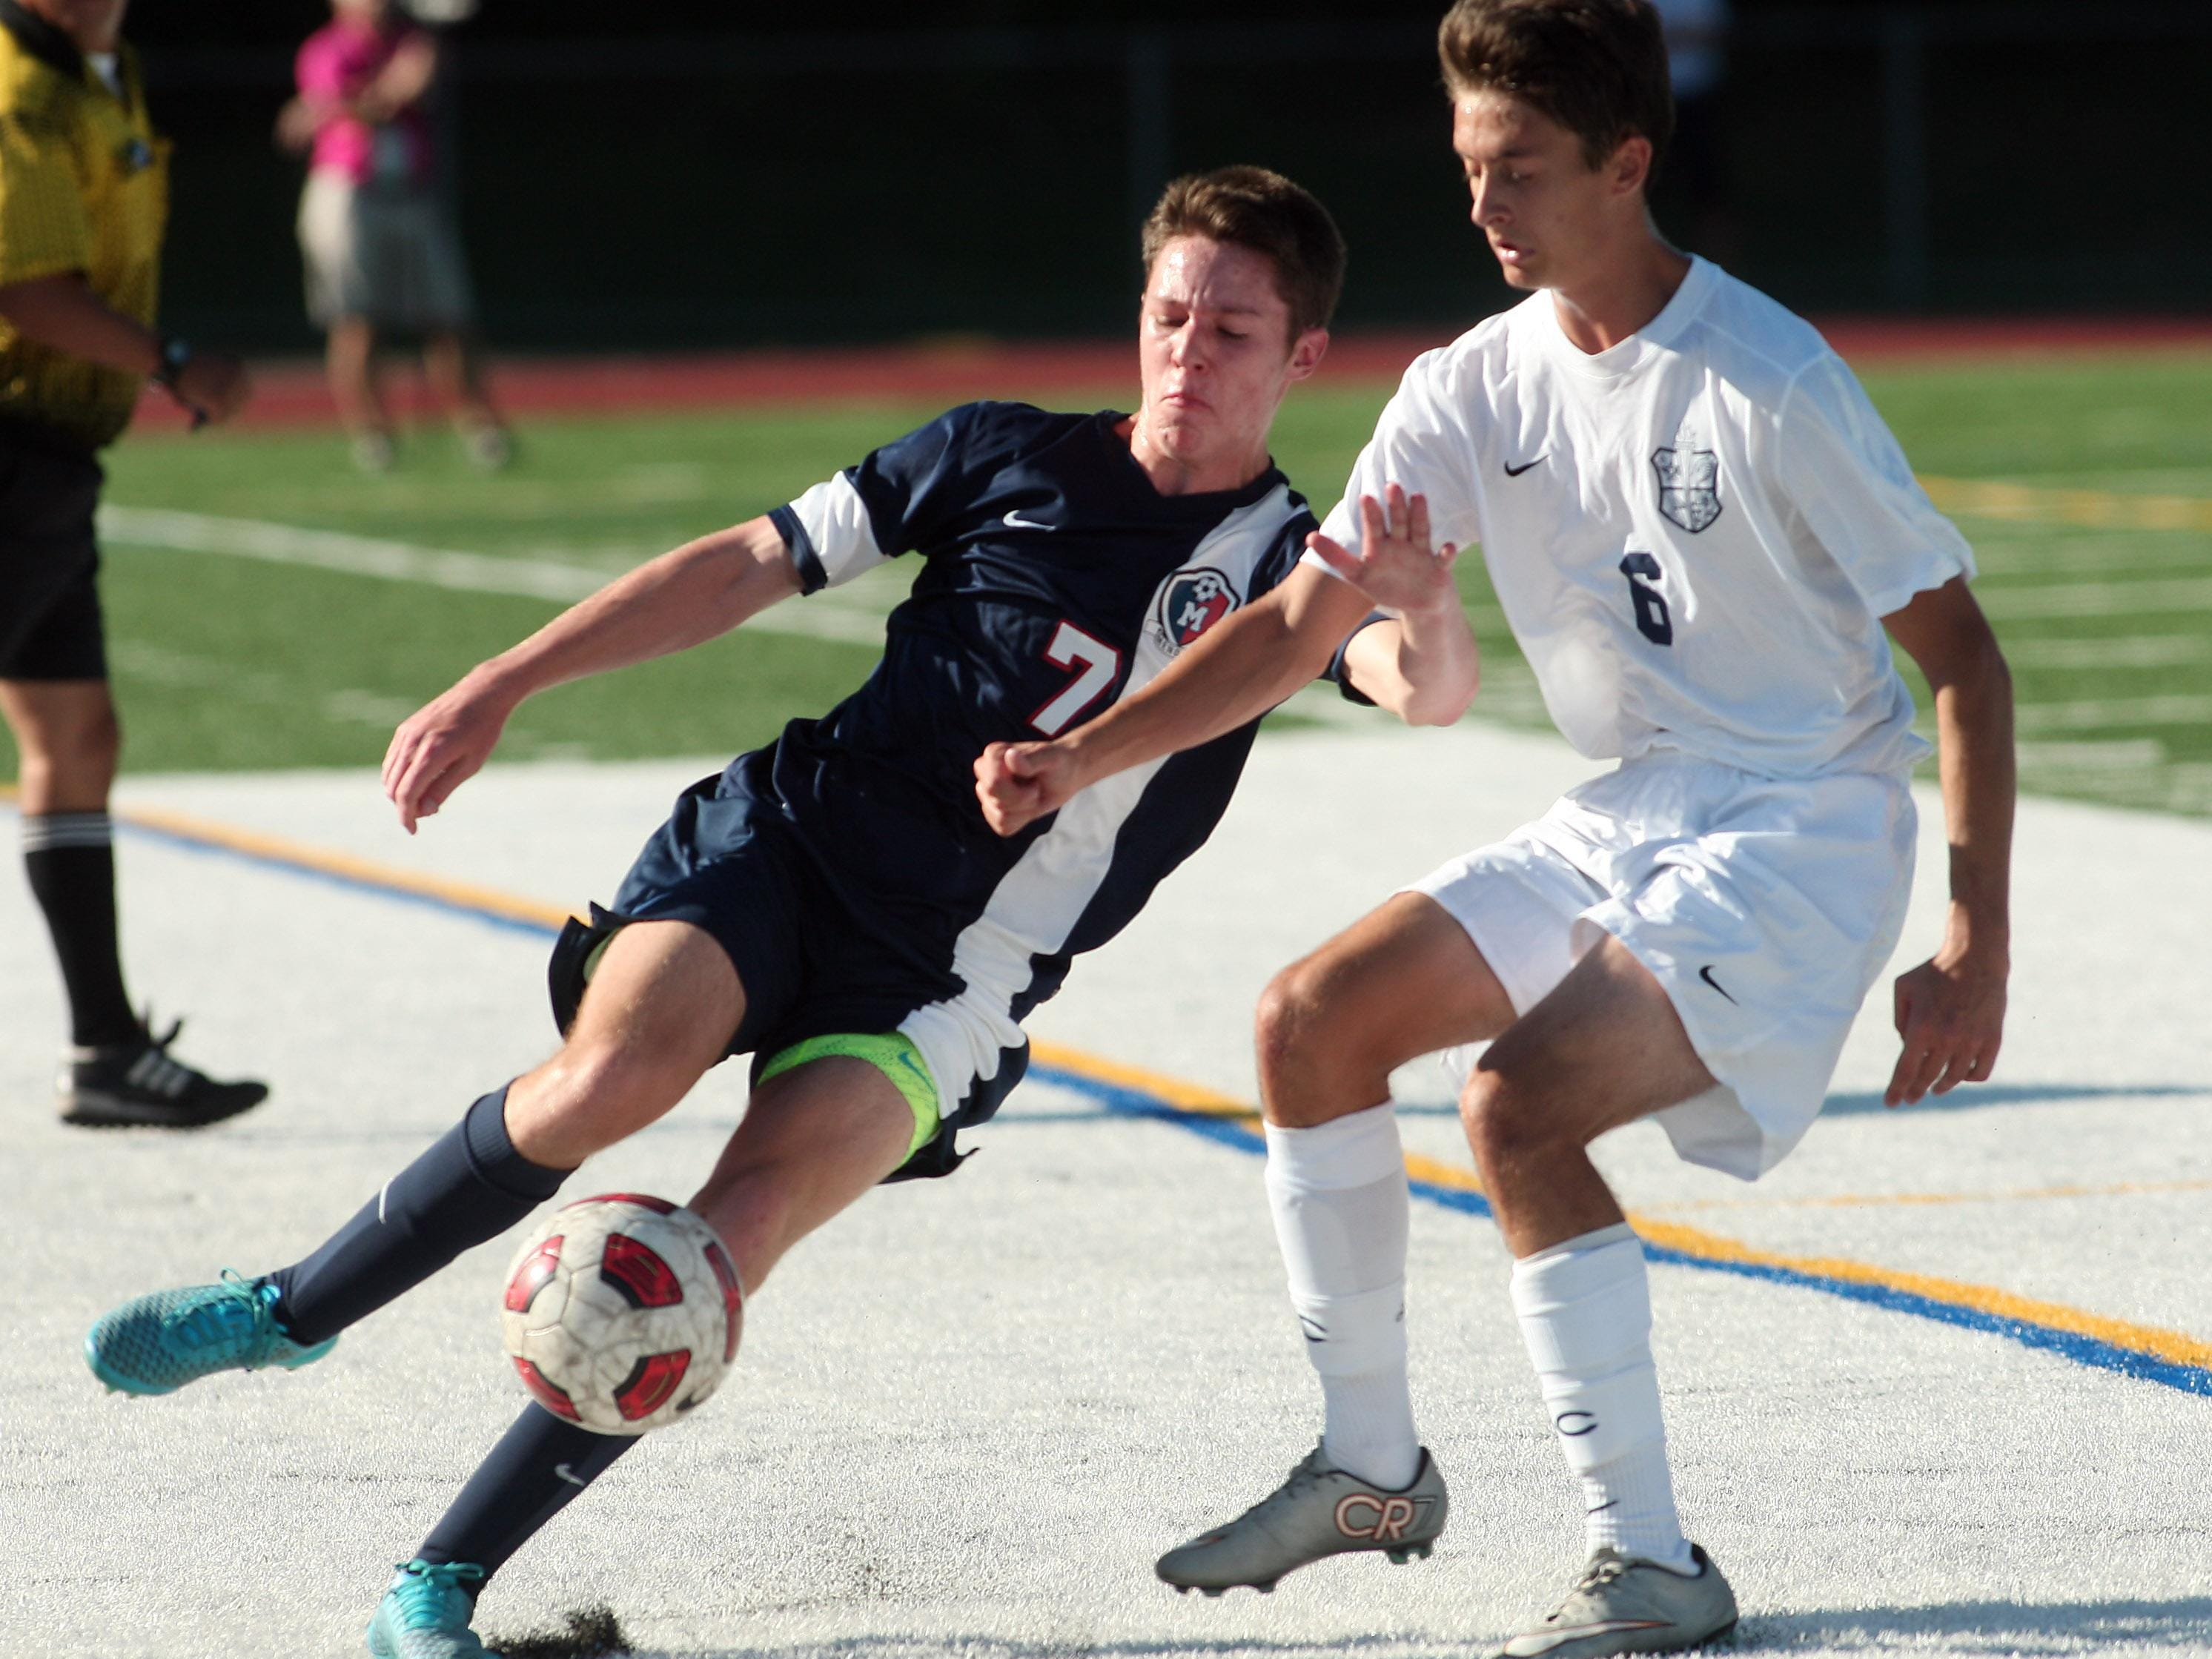 Mendham's Zach Saliterman clears the ball from Chatham defender Brian Guimond during their NJAC-United boys soccer matchup Wednesday.